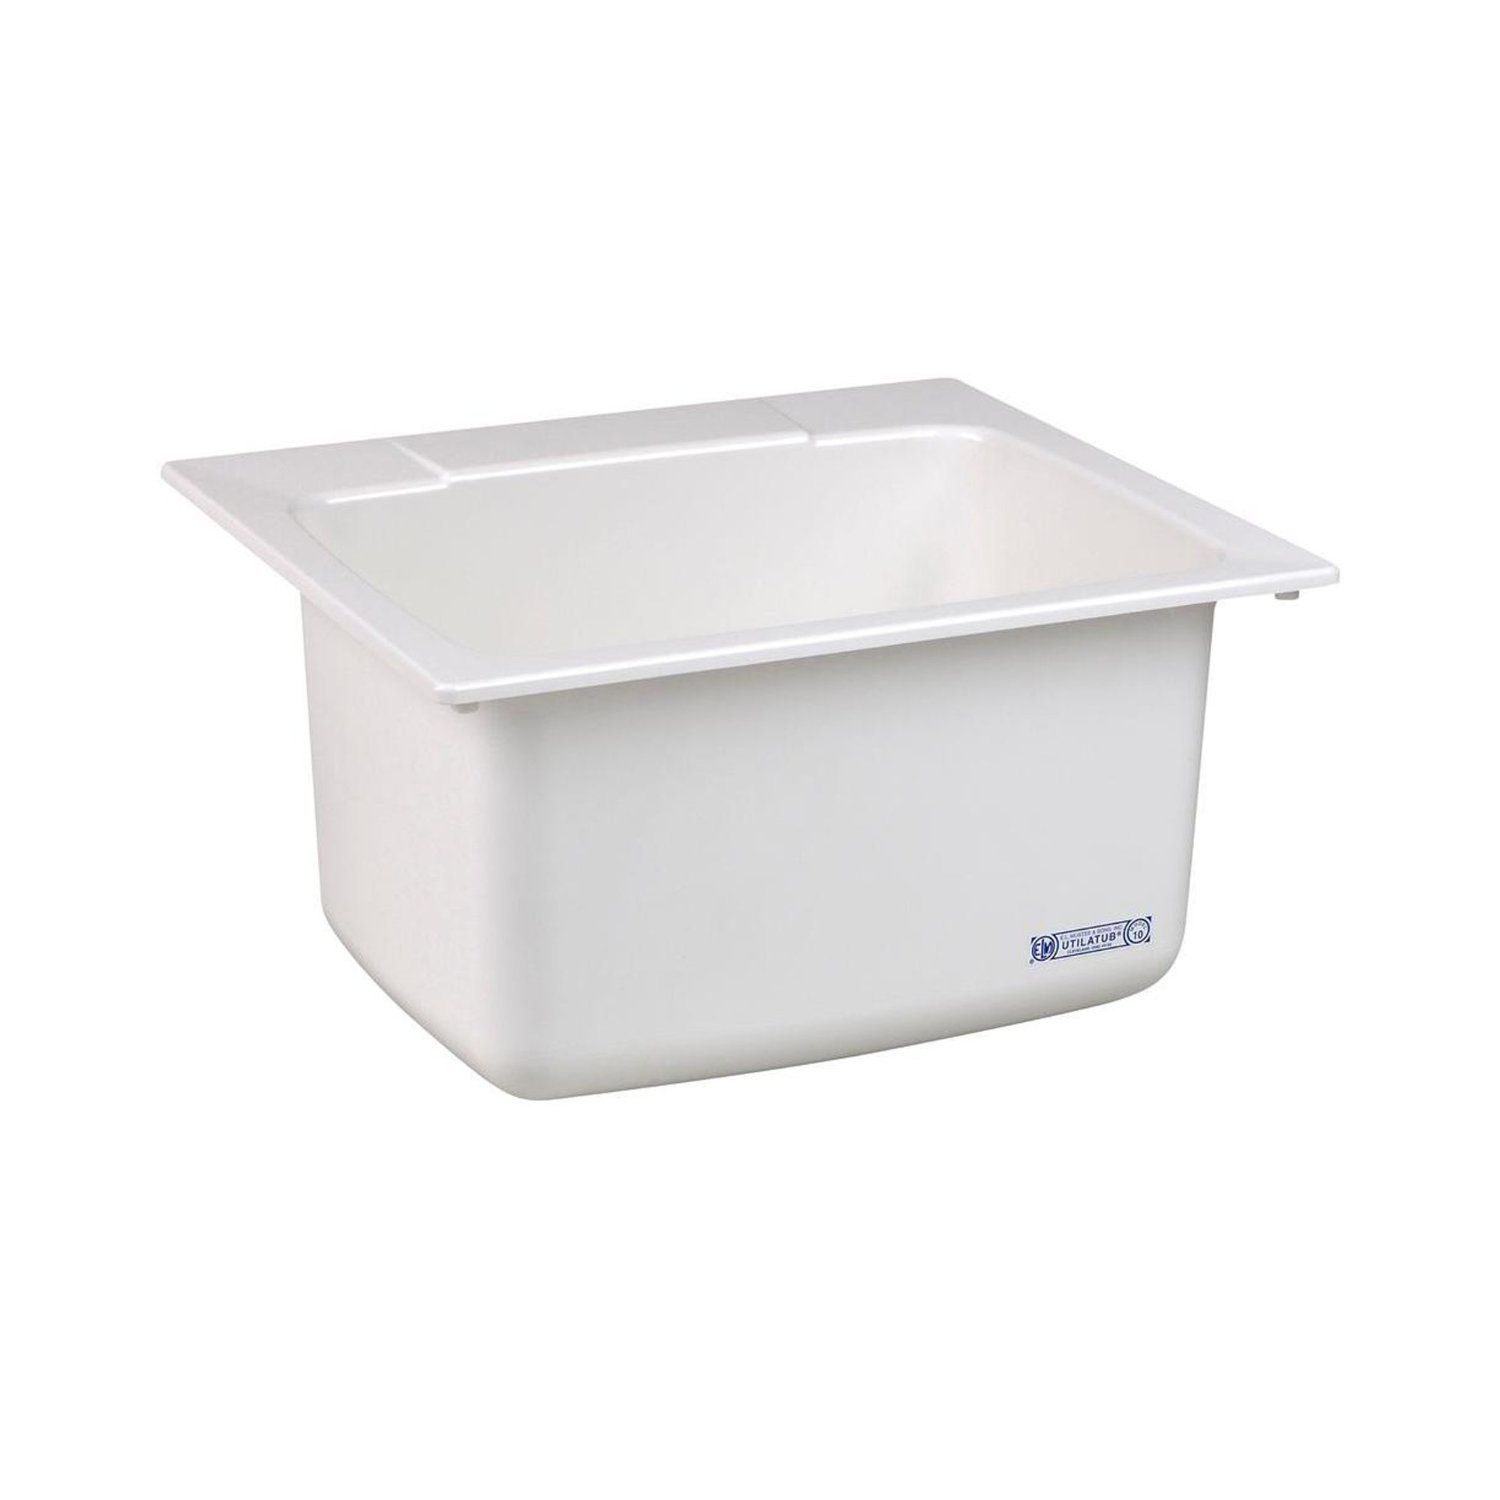 Drop In Laundry Tub Mustee E L 10 Amazon Ca Tools Home